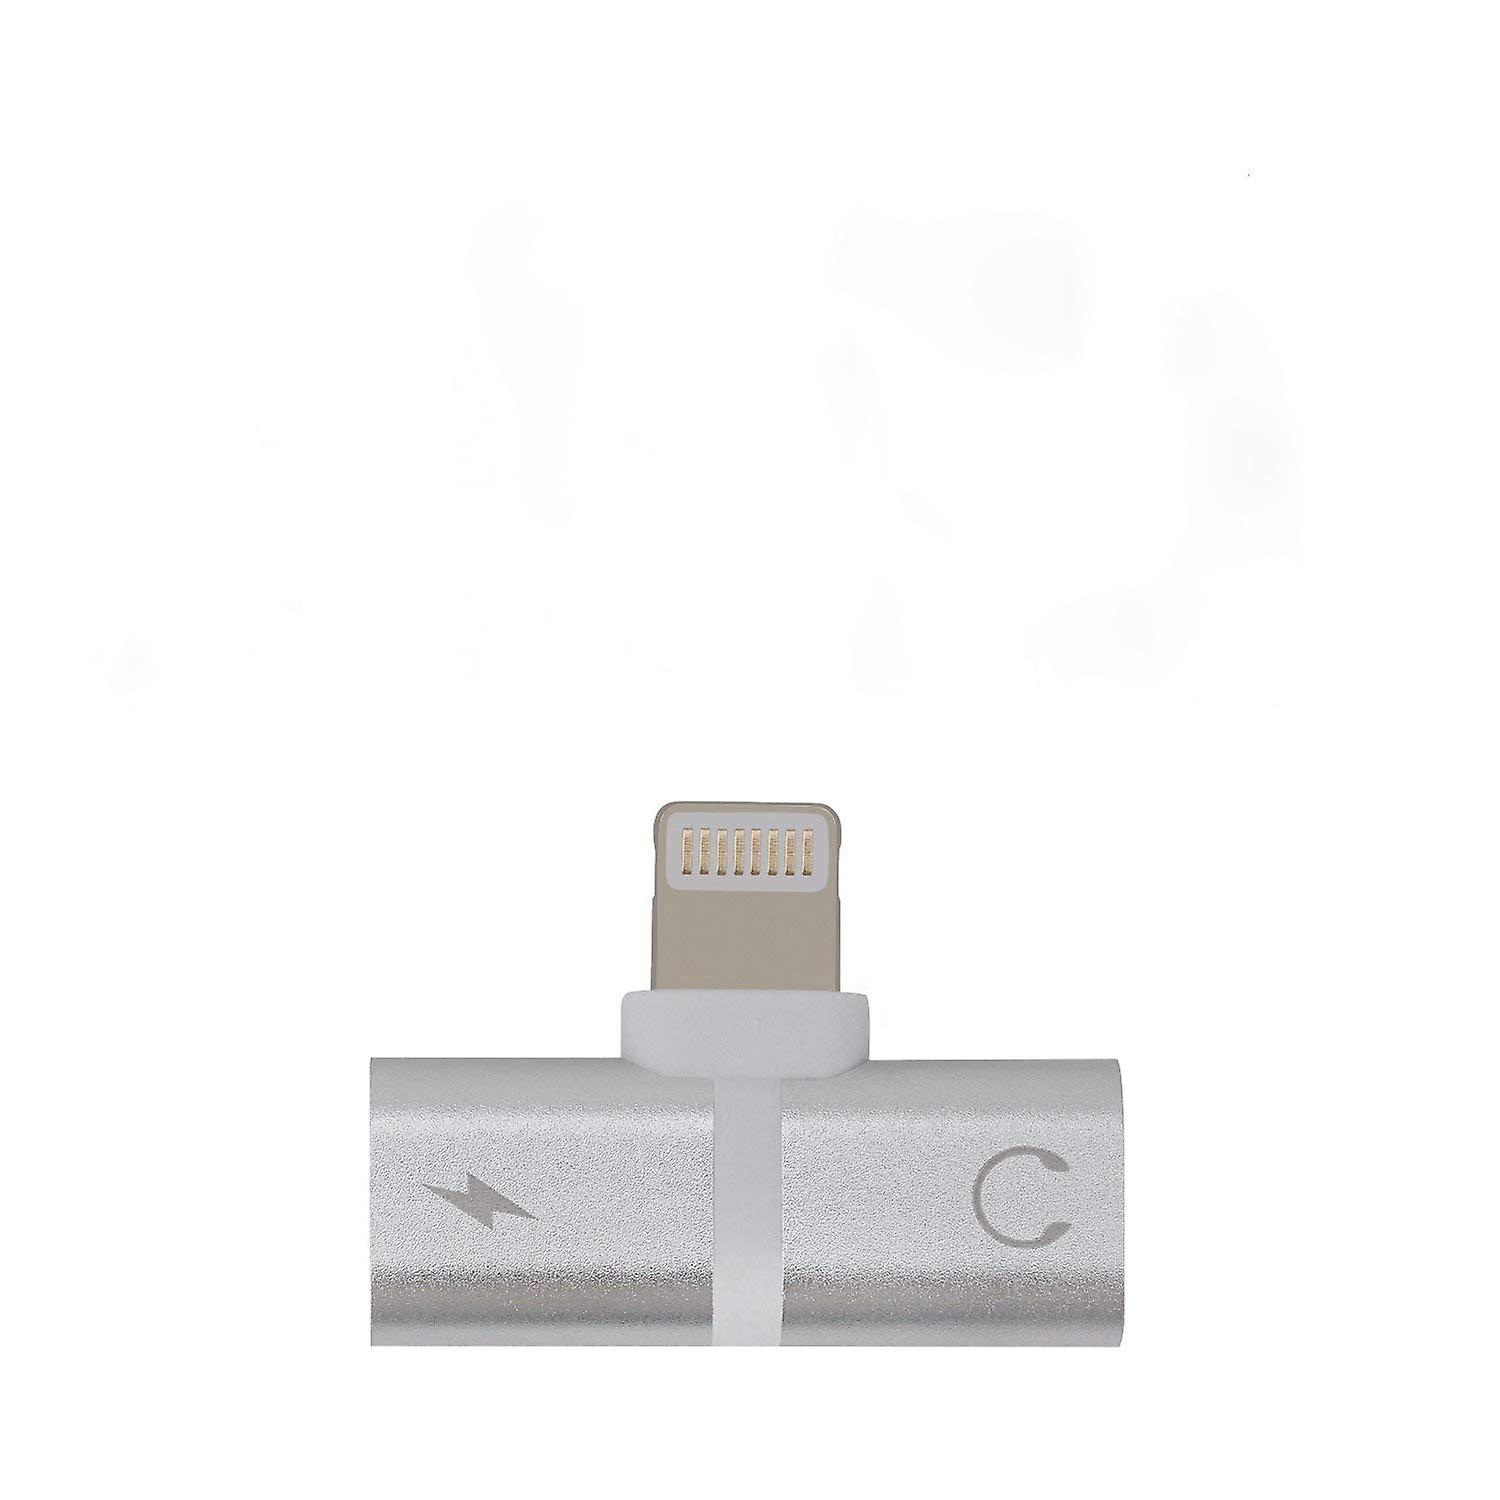 iPhone Adapter Splitter, 2 in 1 Dual Lightning Audio & Charge Adapter